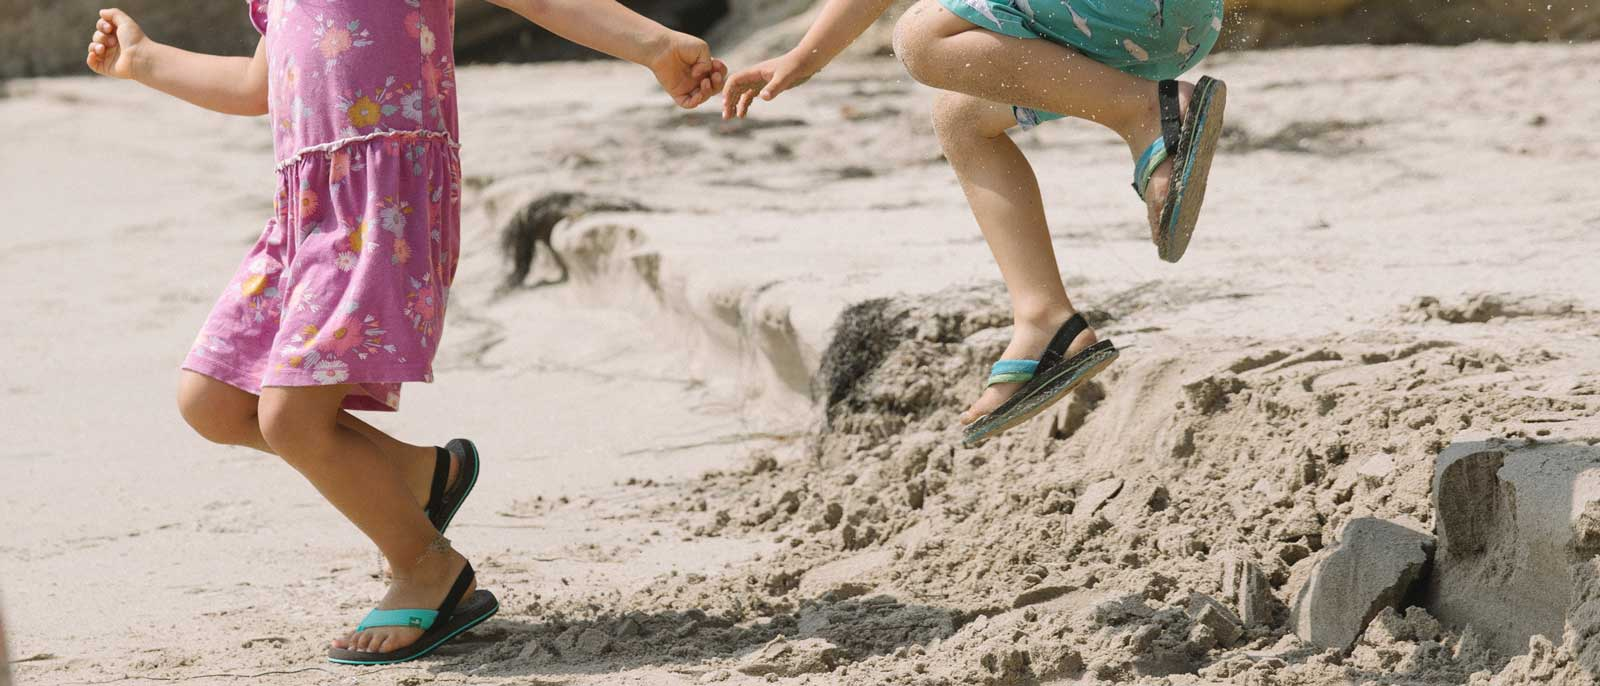 Little boy and girl playing on the beach, wearing Sanuk sandals.